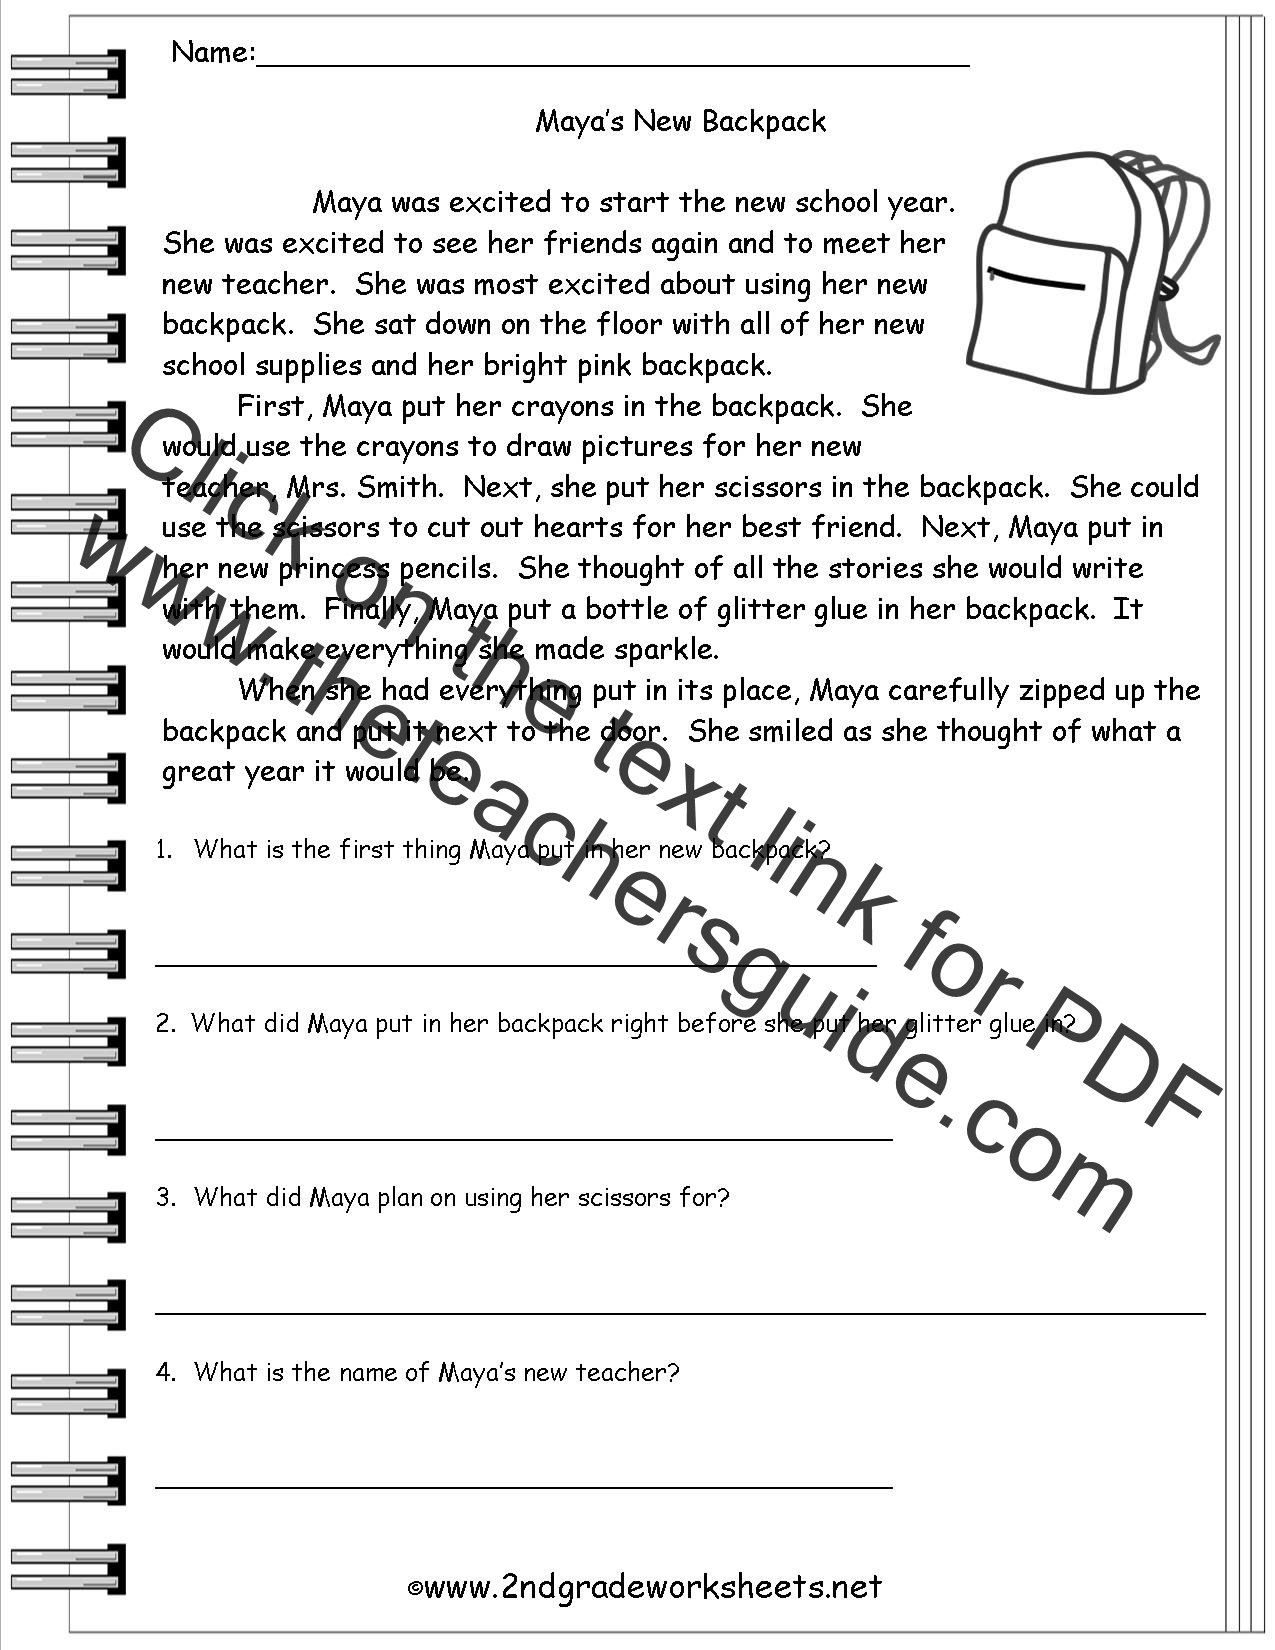 worksheet Reading Comprehension Worksheets 8th Grade worksheet 8th grade reading worksheets thedanks for everyone free second comprehension w ksheets re d g libr